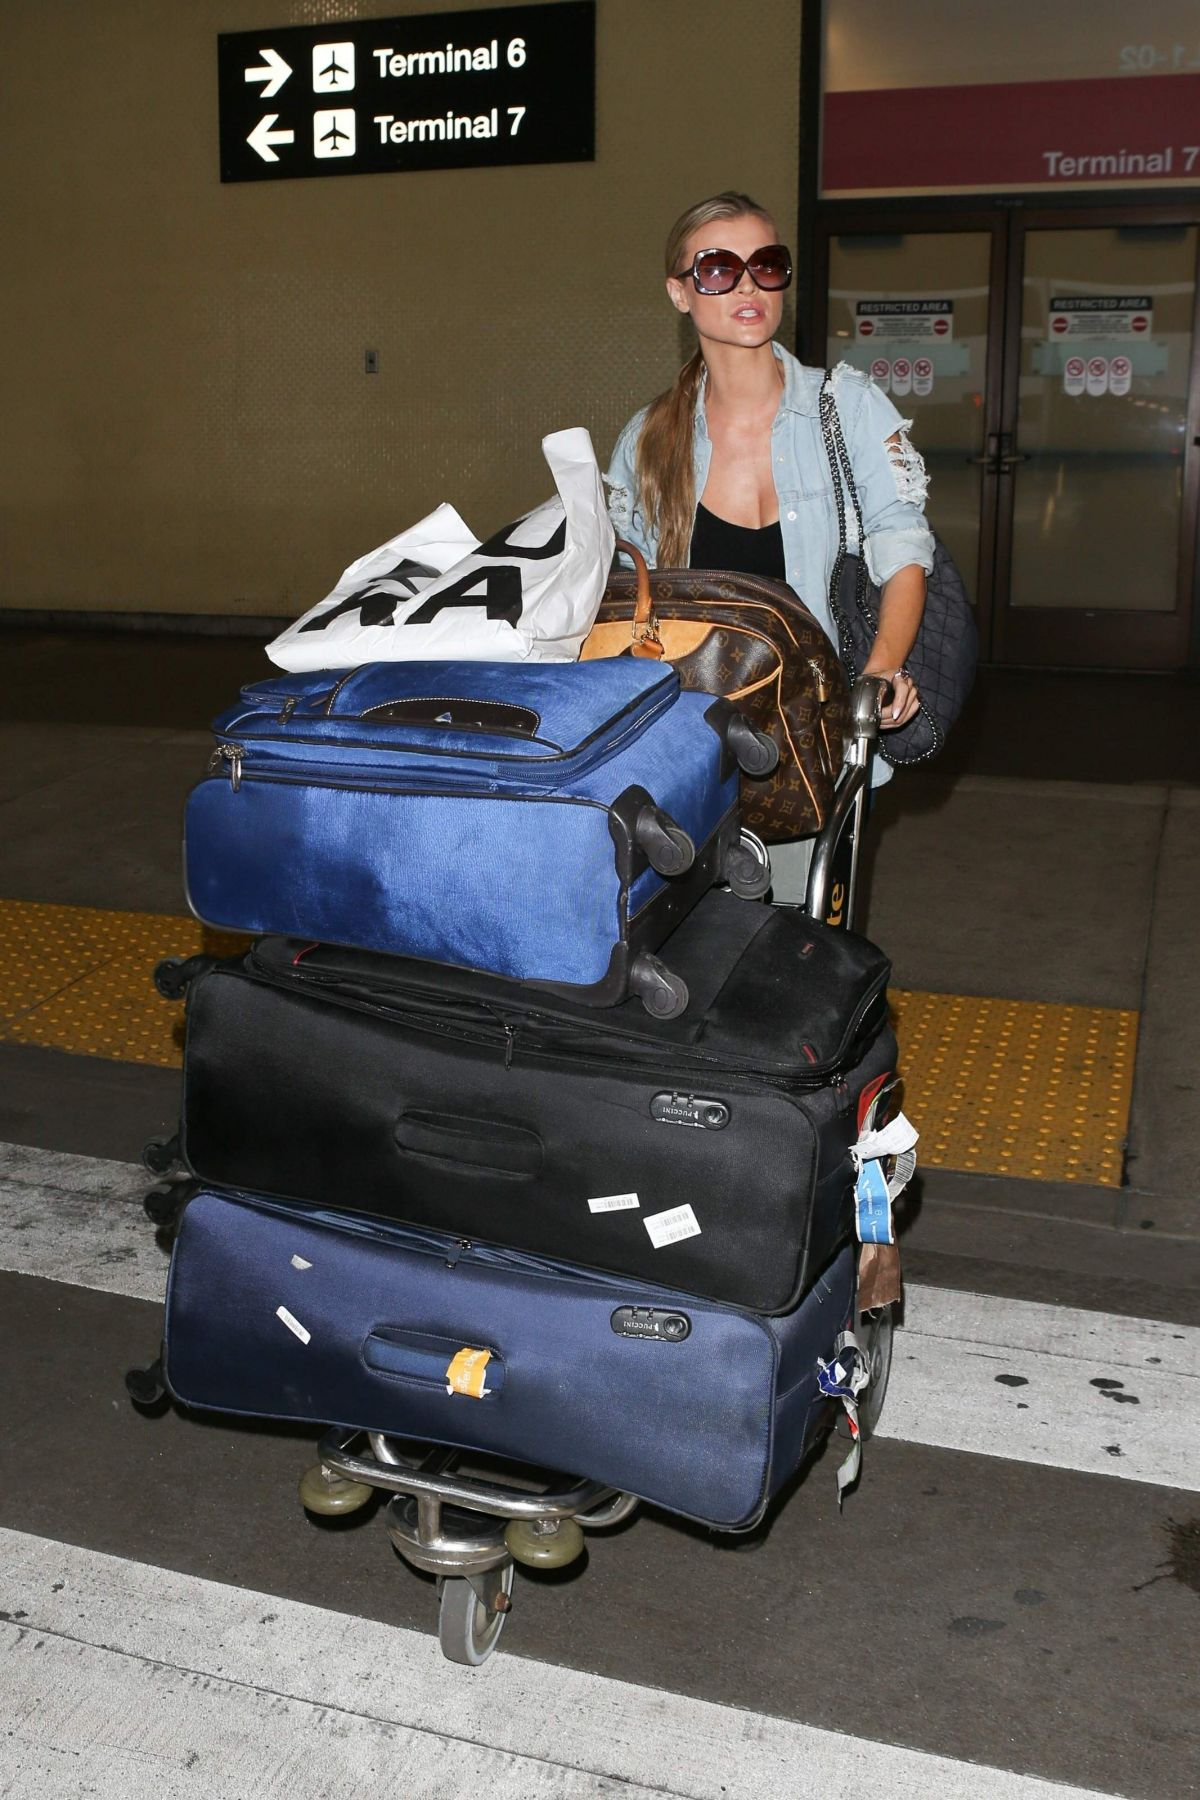 Joanna Krupa At LAX International Airport, Los Angeles   joanna-krupa-at-lax-international-airport-los-angeles_17